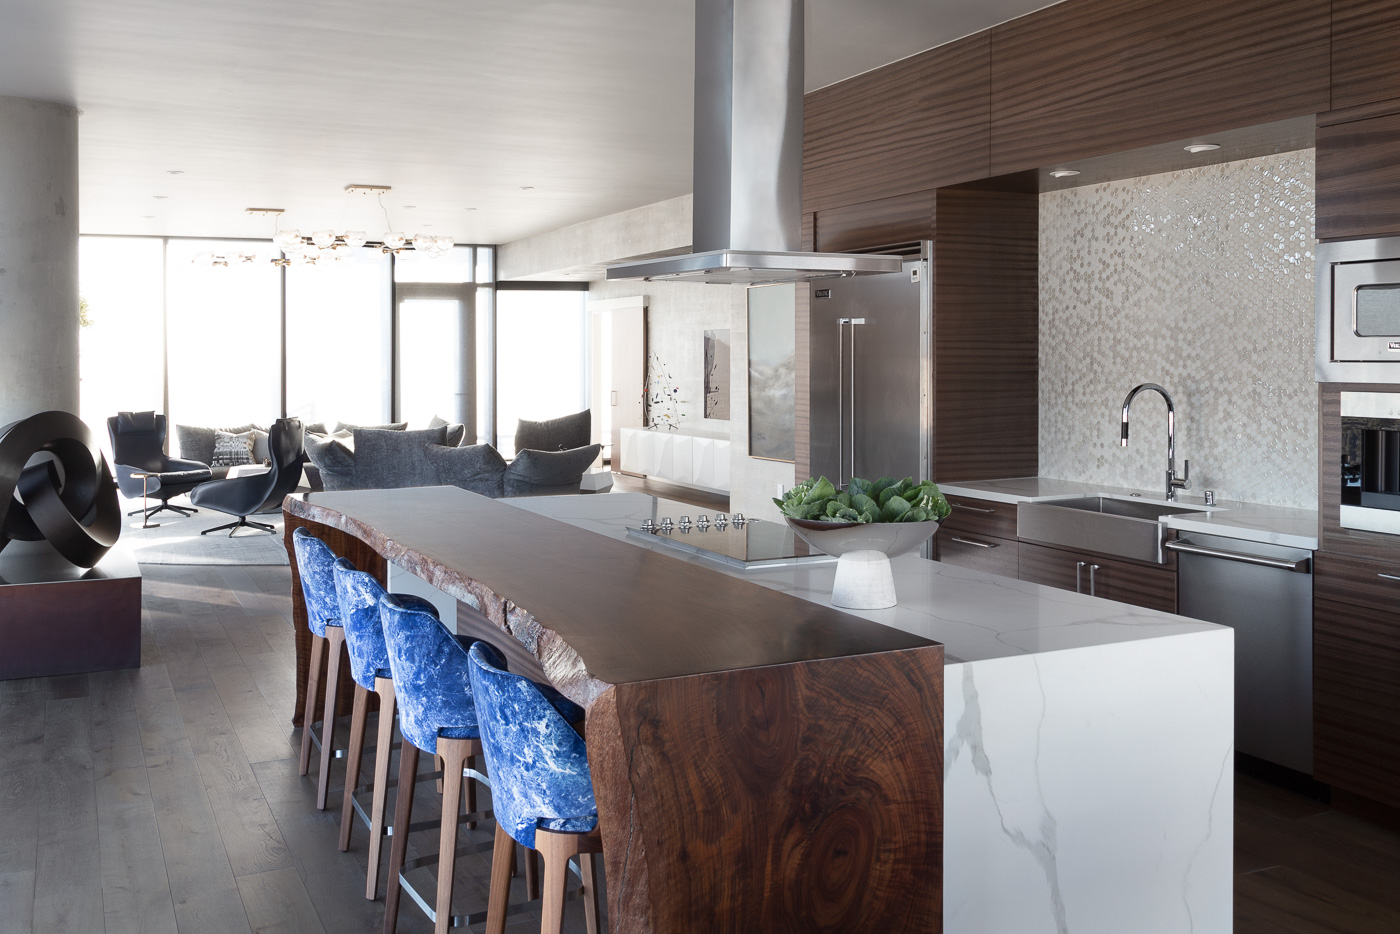 Contemporary Penthouse in California by Benning Design Constructions